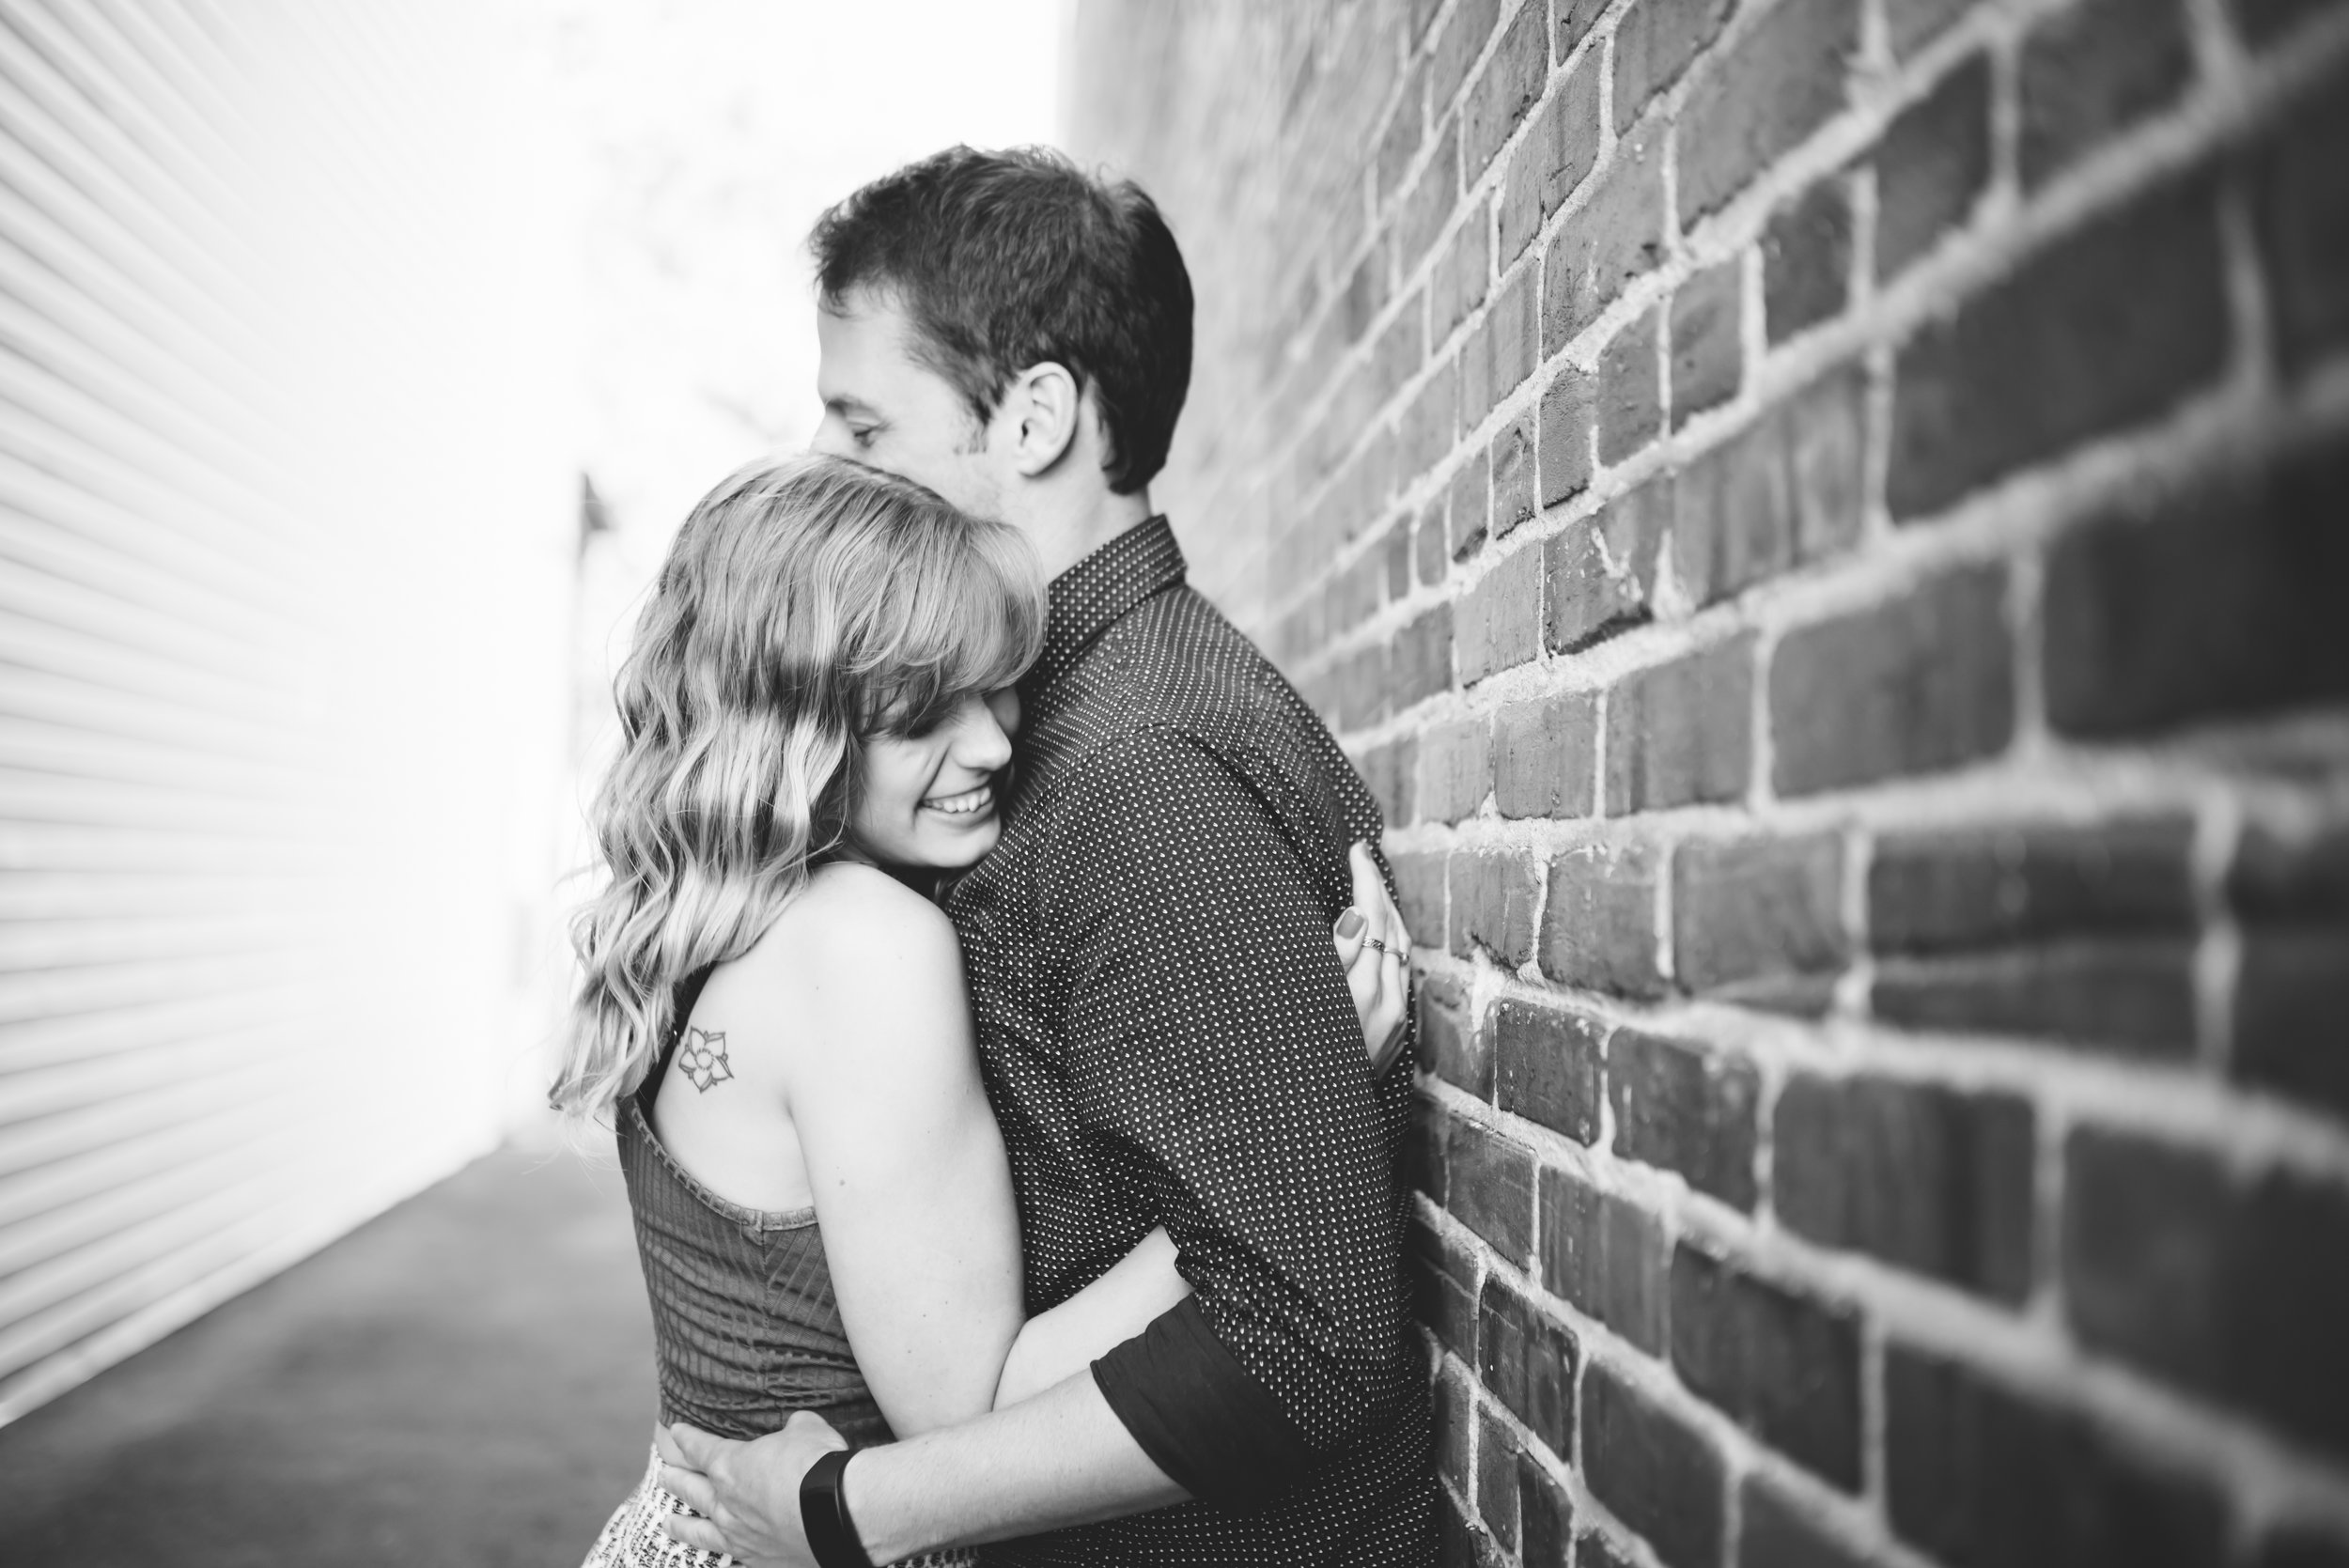 floyd-va-couple-photography.jpg